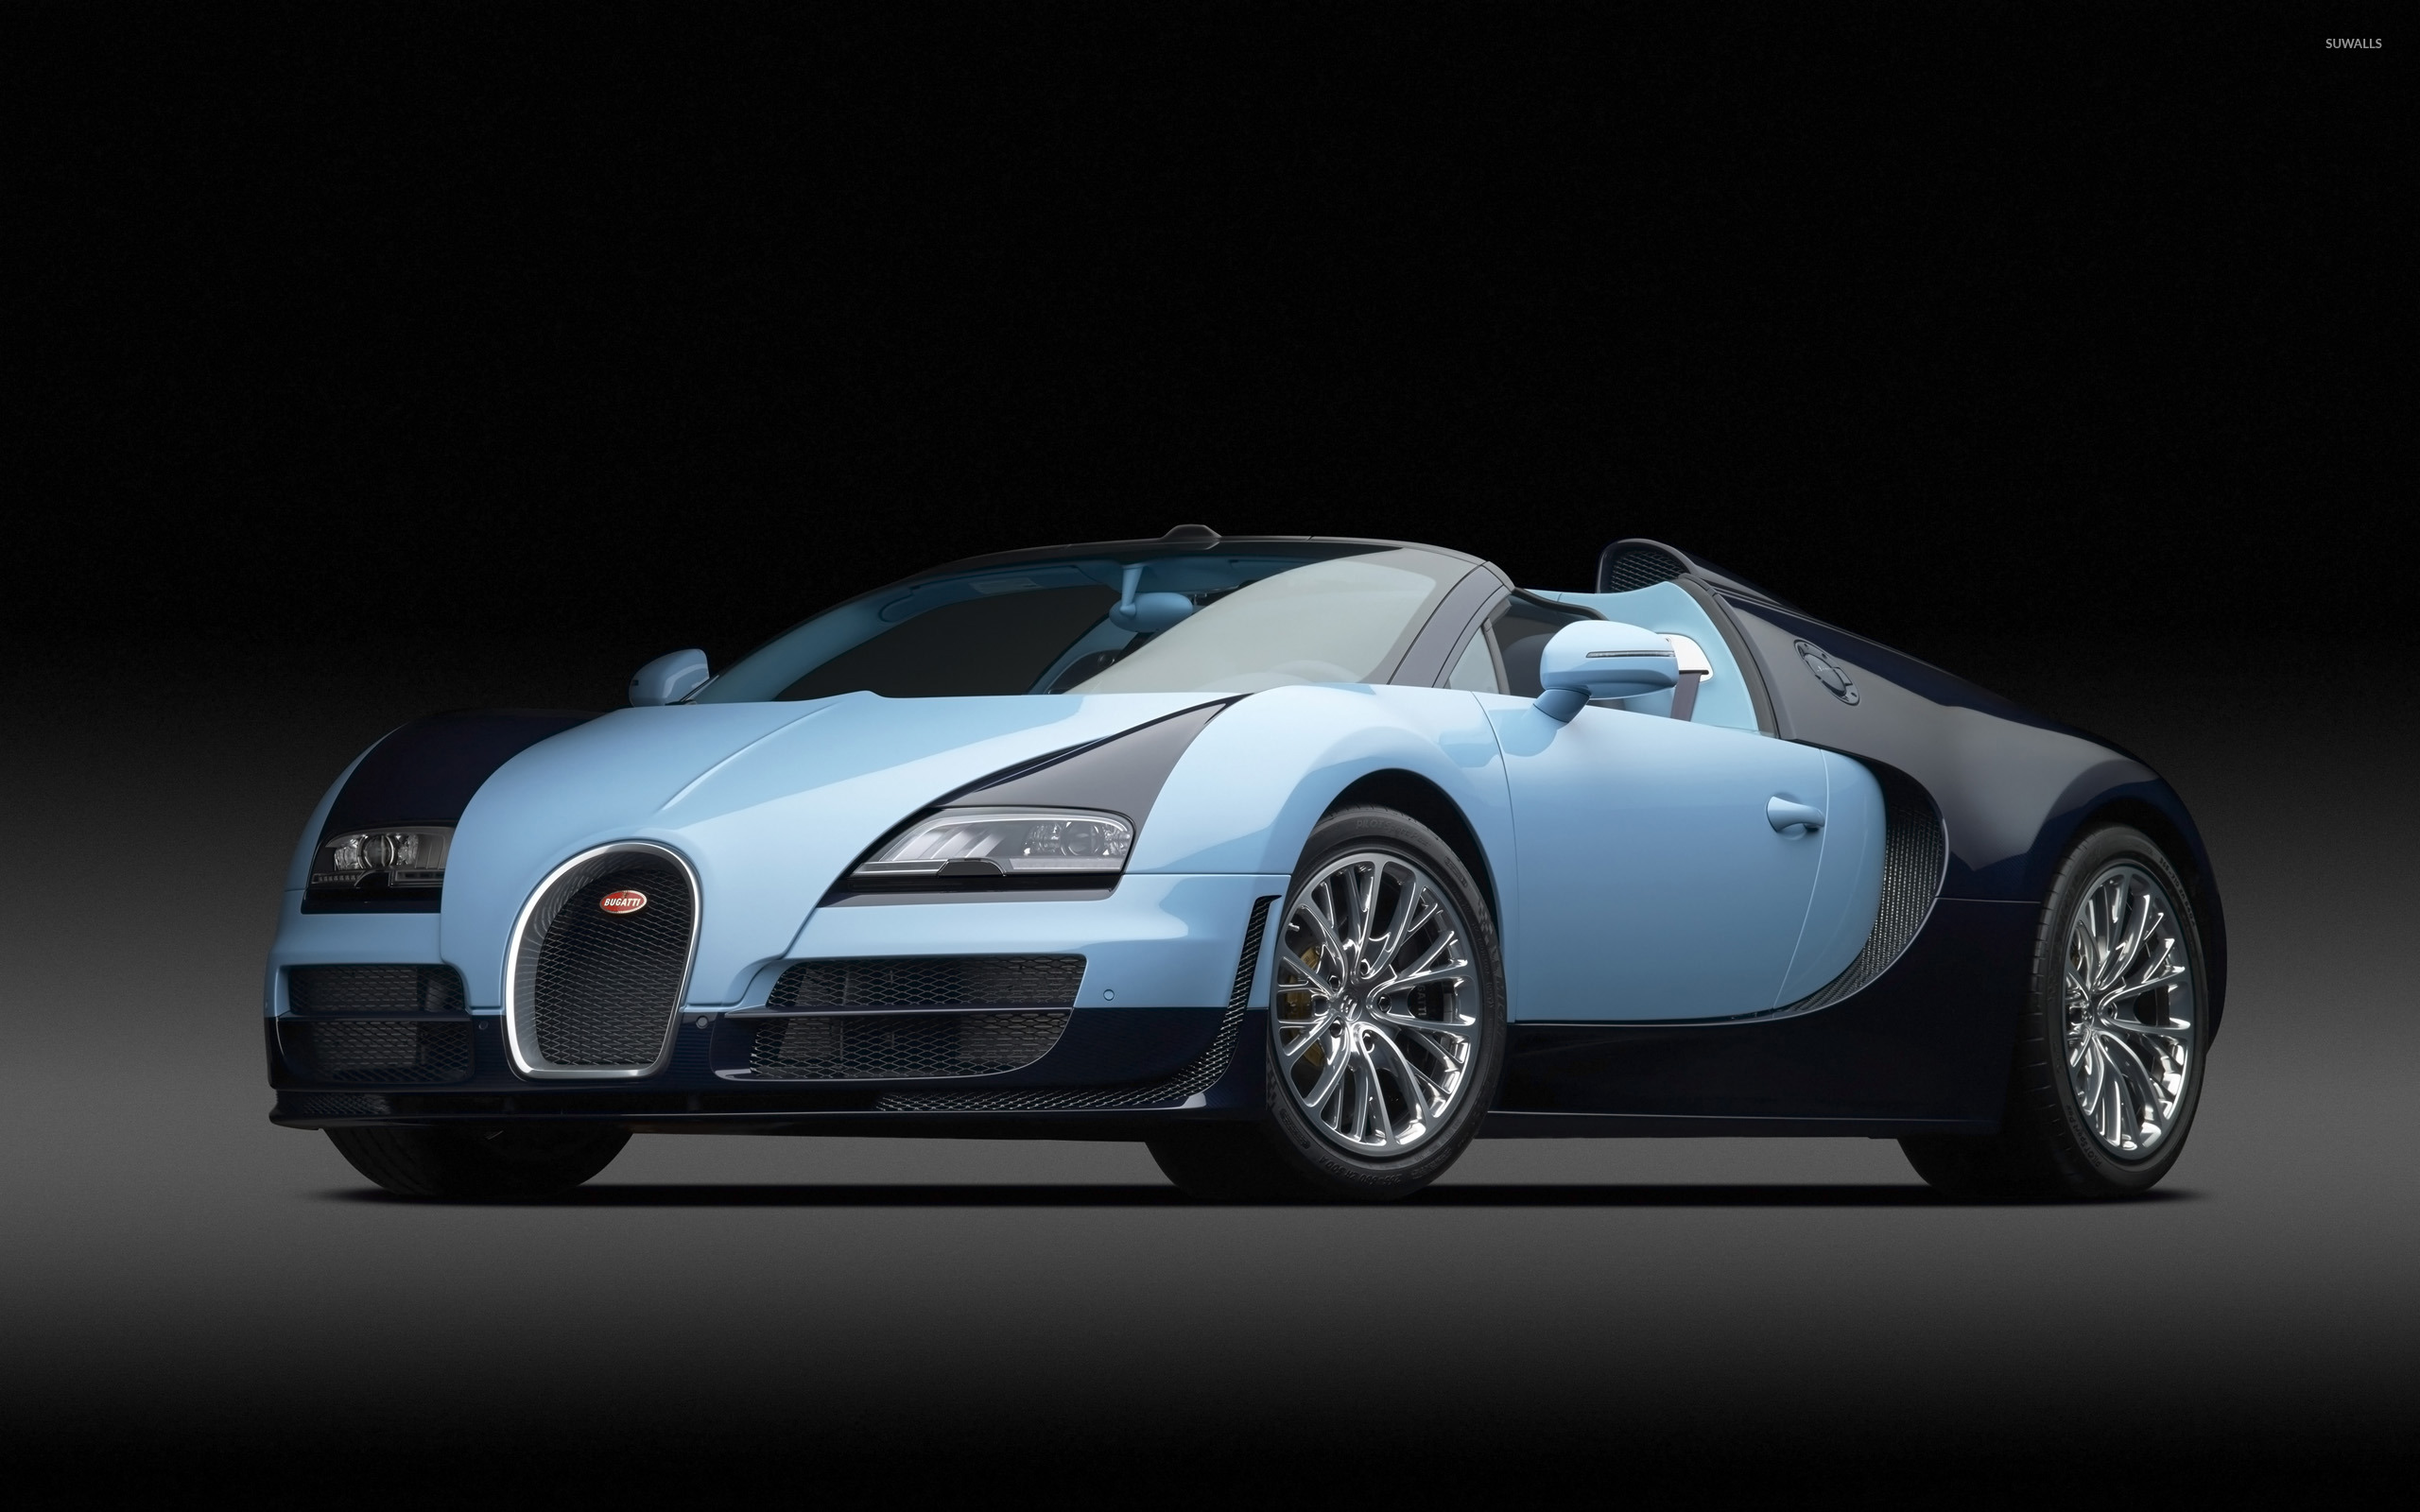 2013 bugatti veyron grand sport vitesse wallpaper car. Black Bedroom Furniture Sets. Home Design Ideas